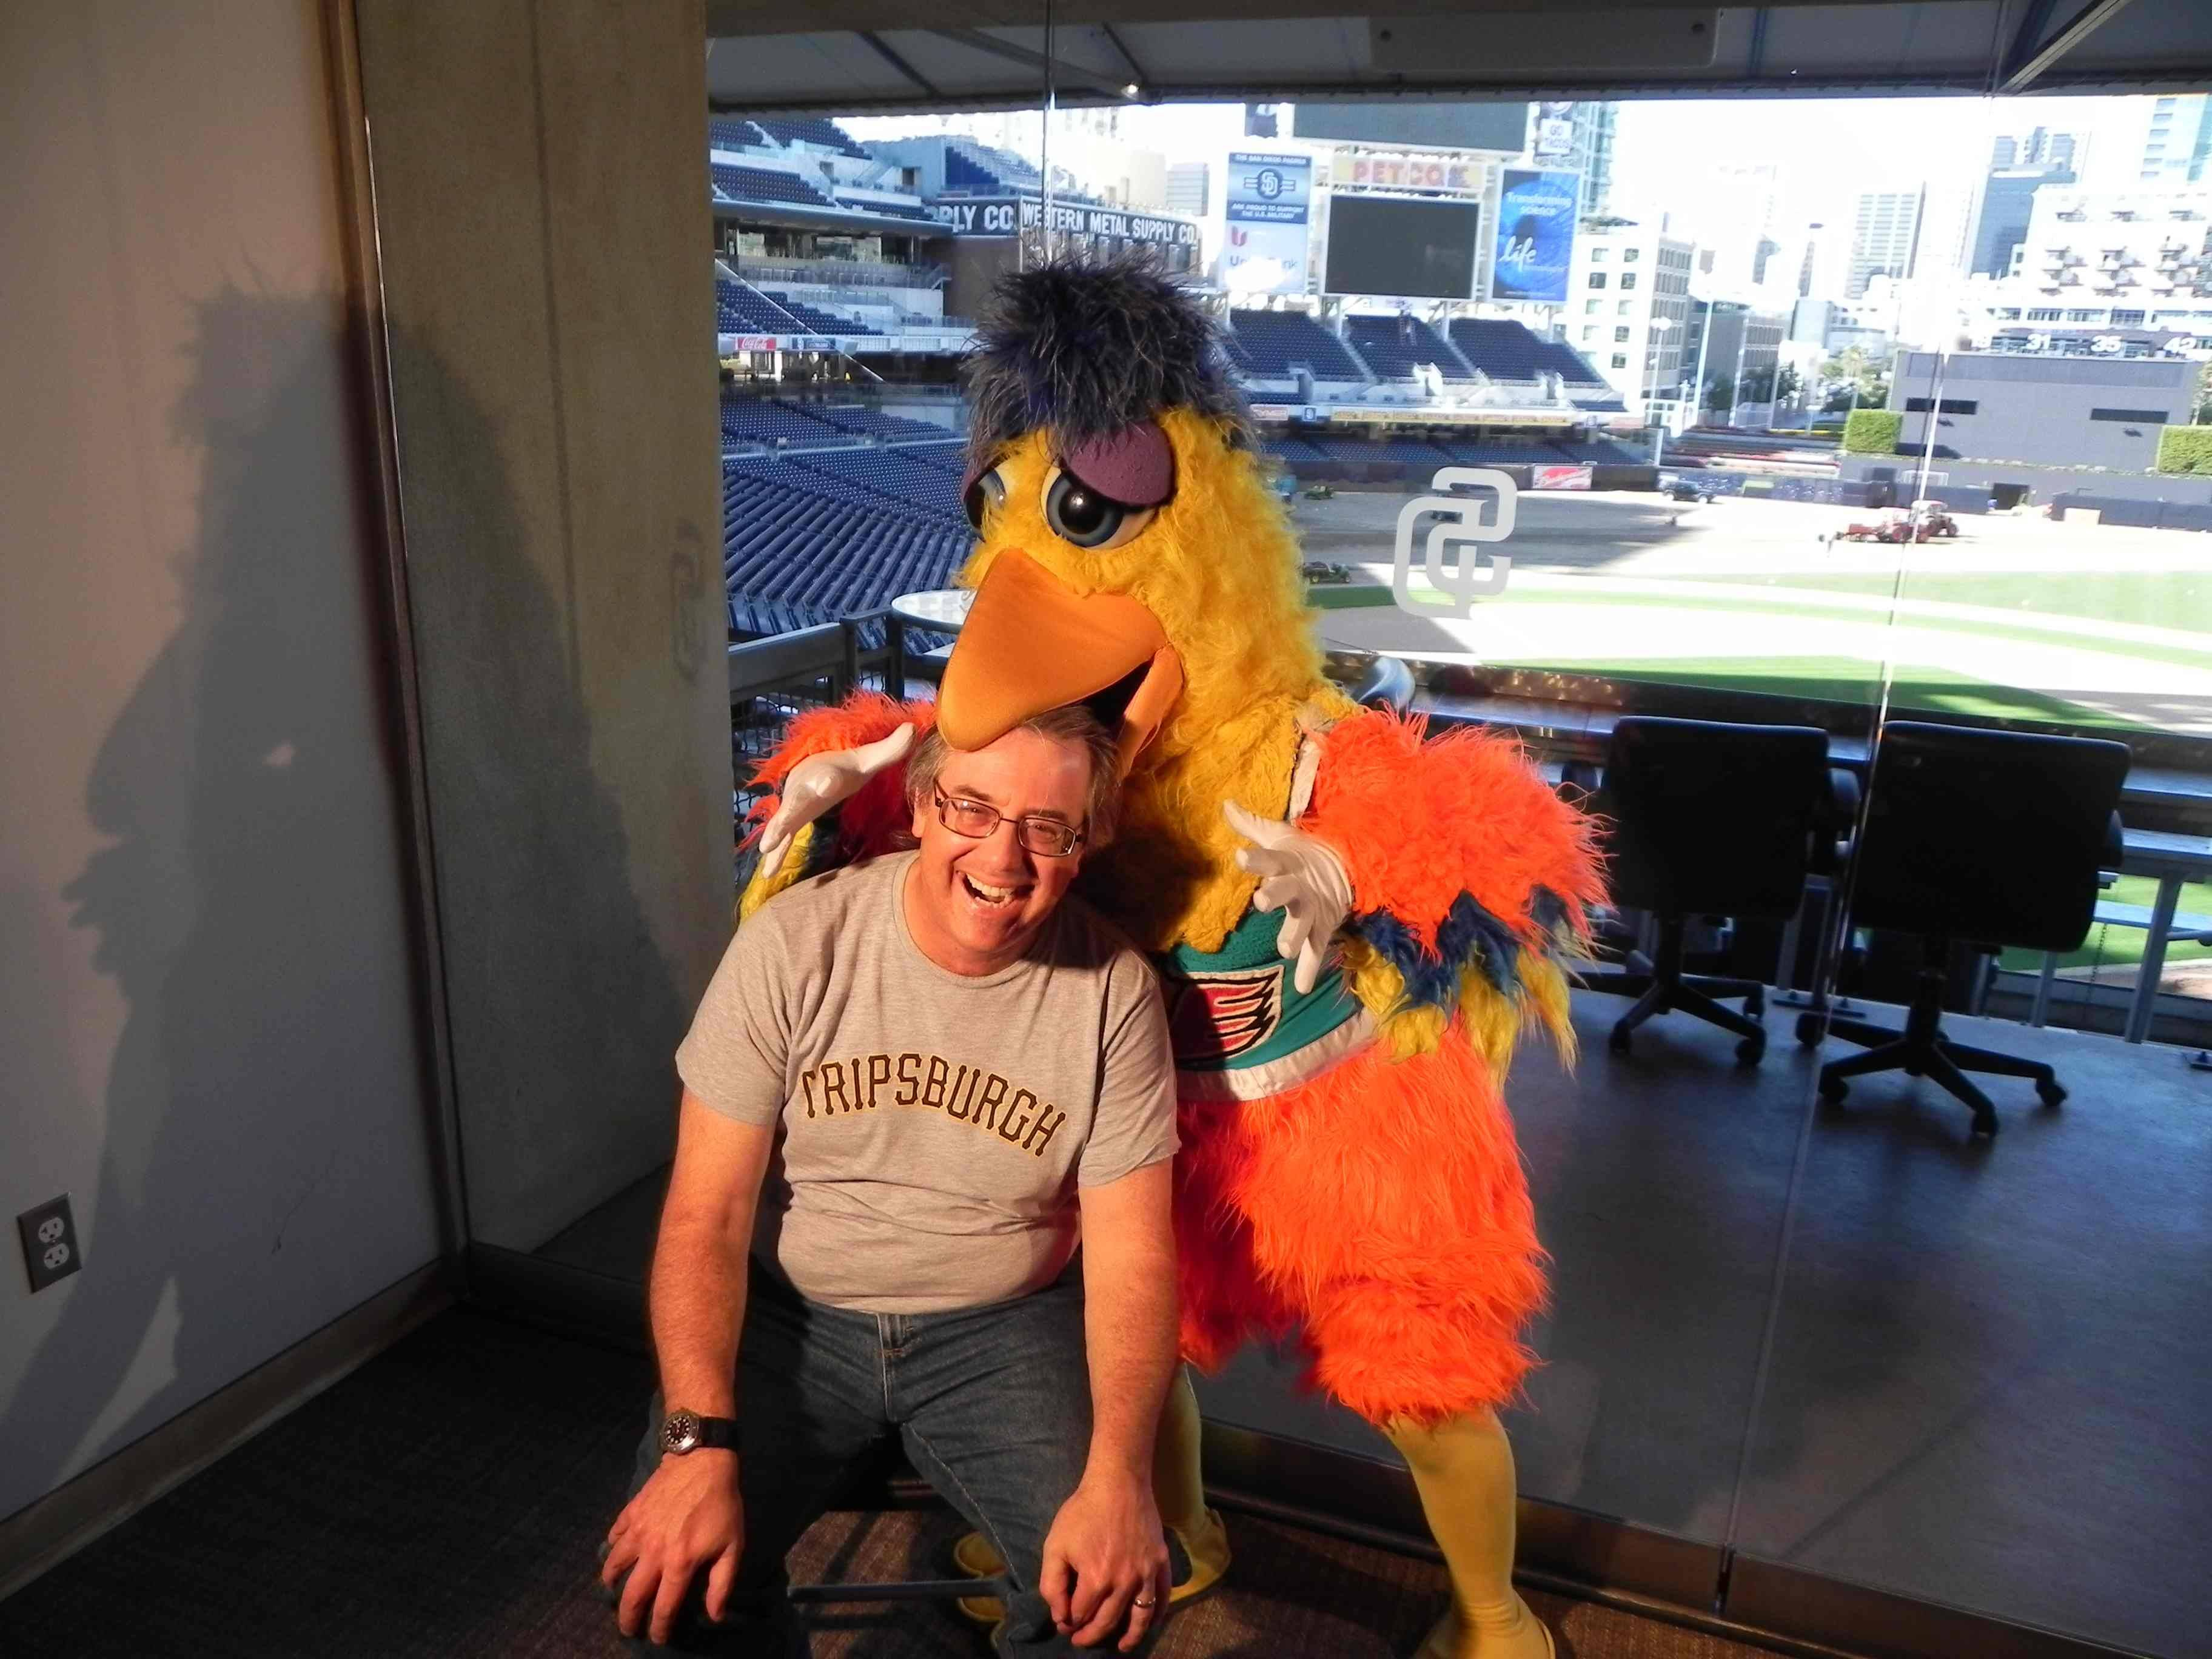 The world-famous San Diego Chicken takes a liking to producer/director Jon Leonoudakis during an interview at San Diego's Petco Park.Peter Padua